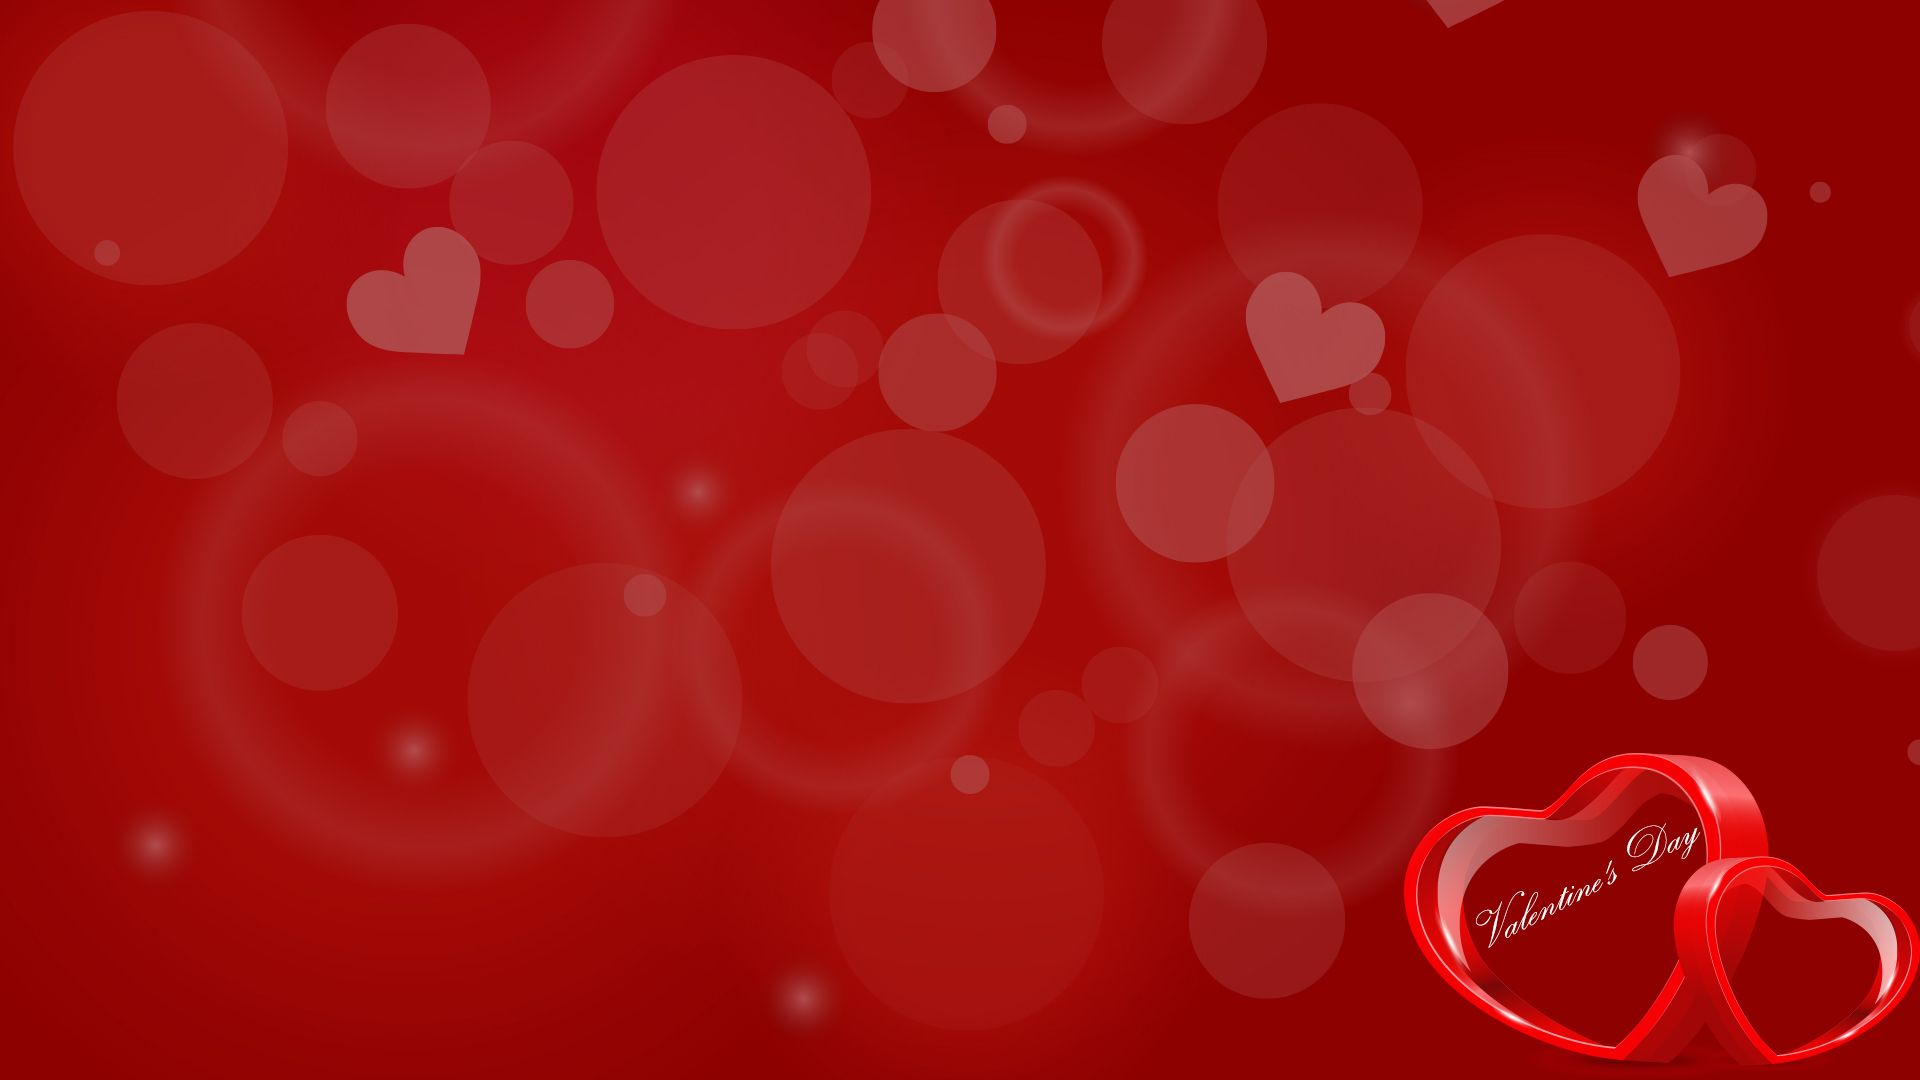 Valentines Day Heart Backgrounds For Powerpoint   Love Ppt Within 1920x1080